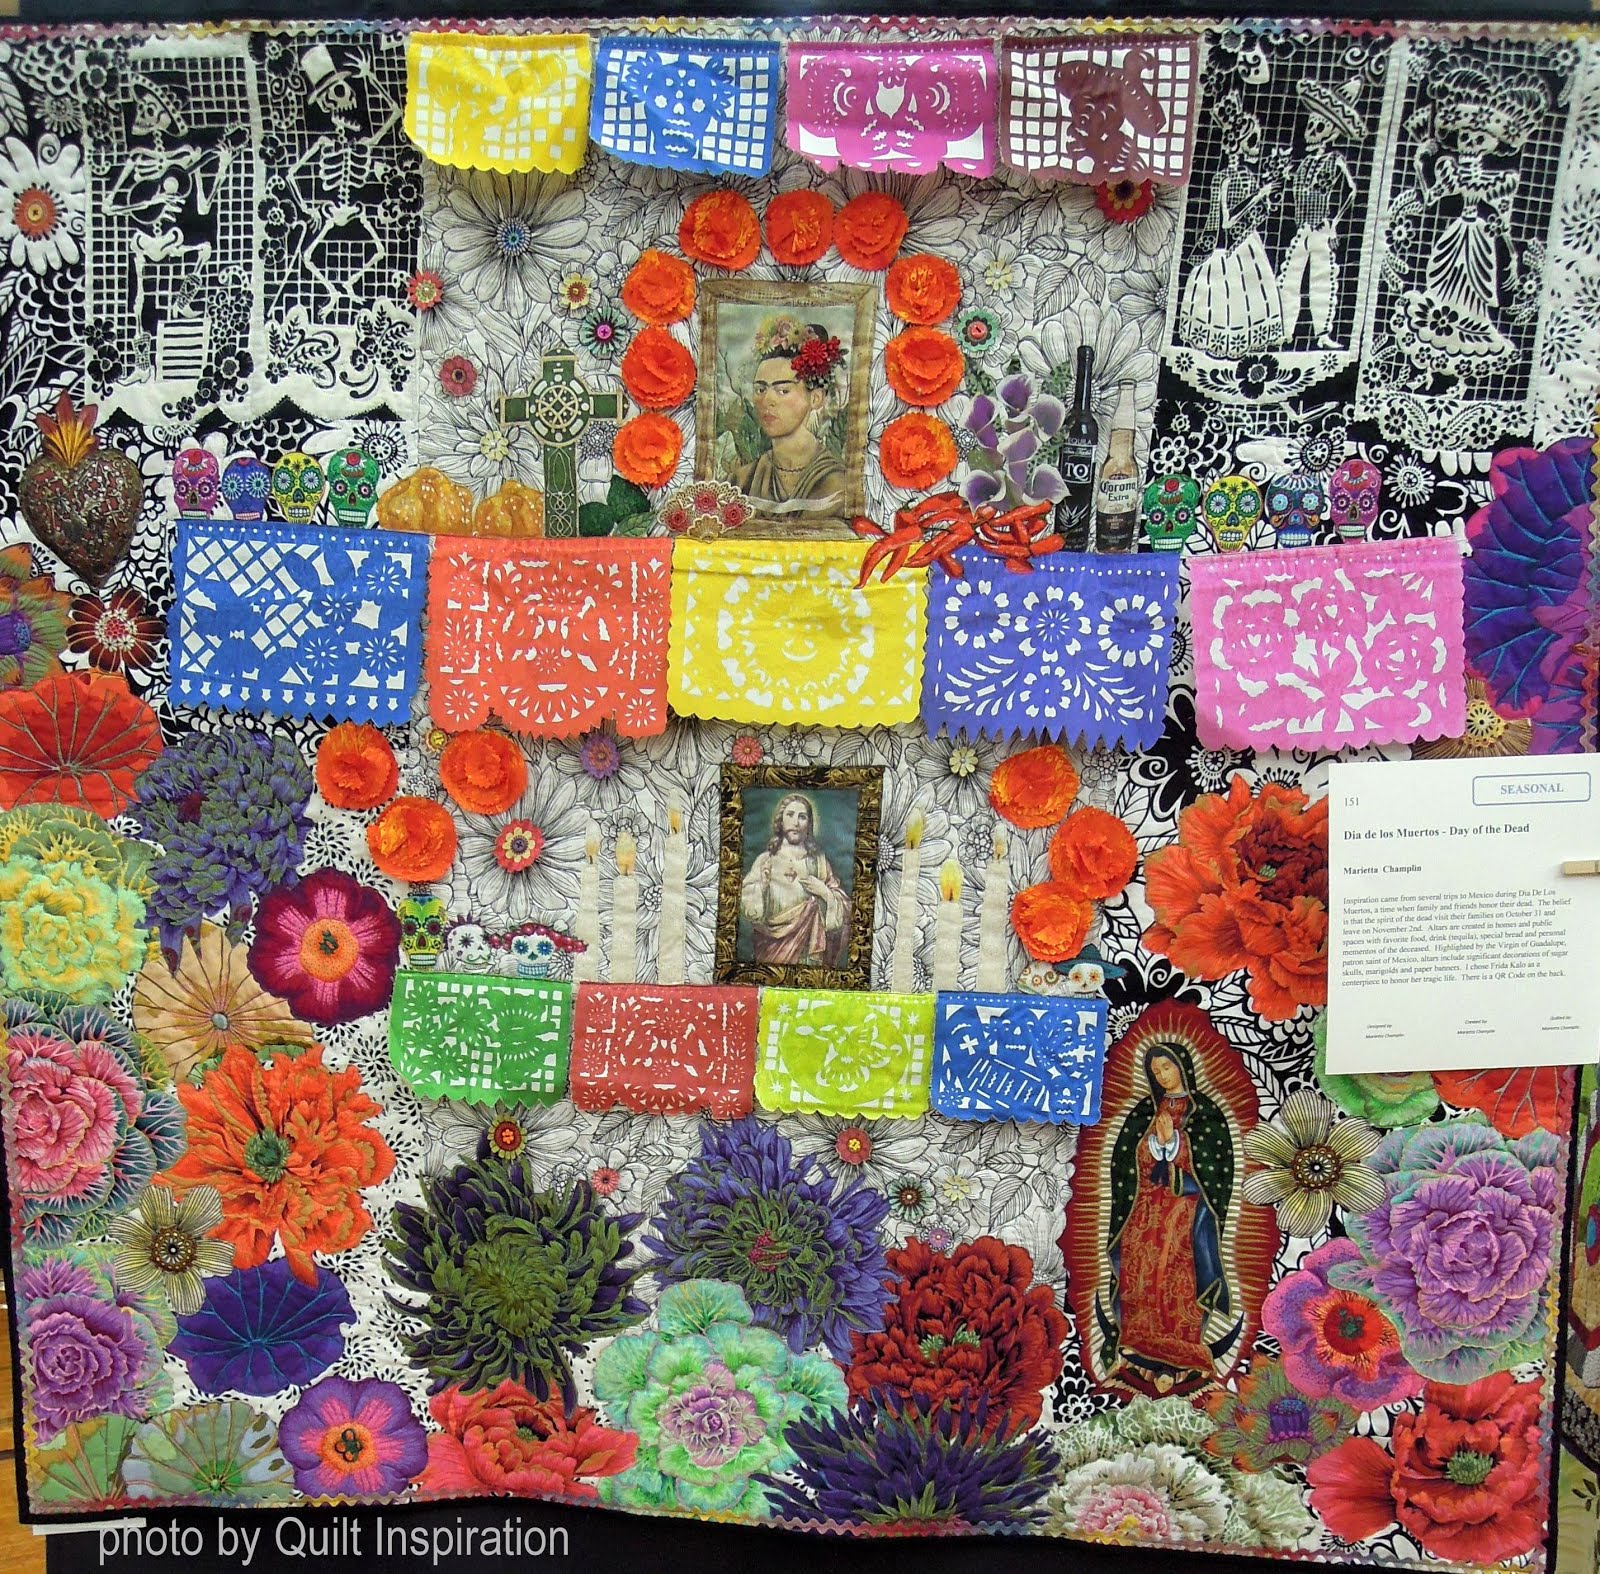 Quilt Inspiration: All Hallow\'s Eve and Day of the Dead